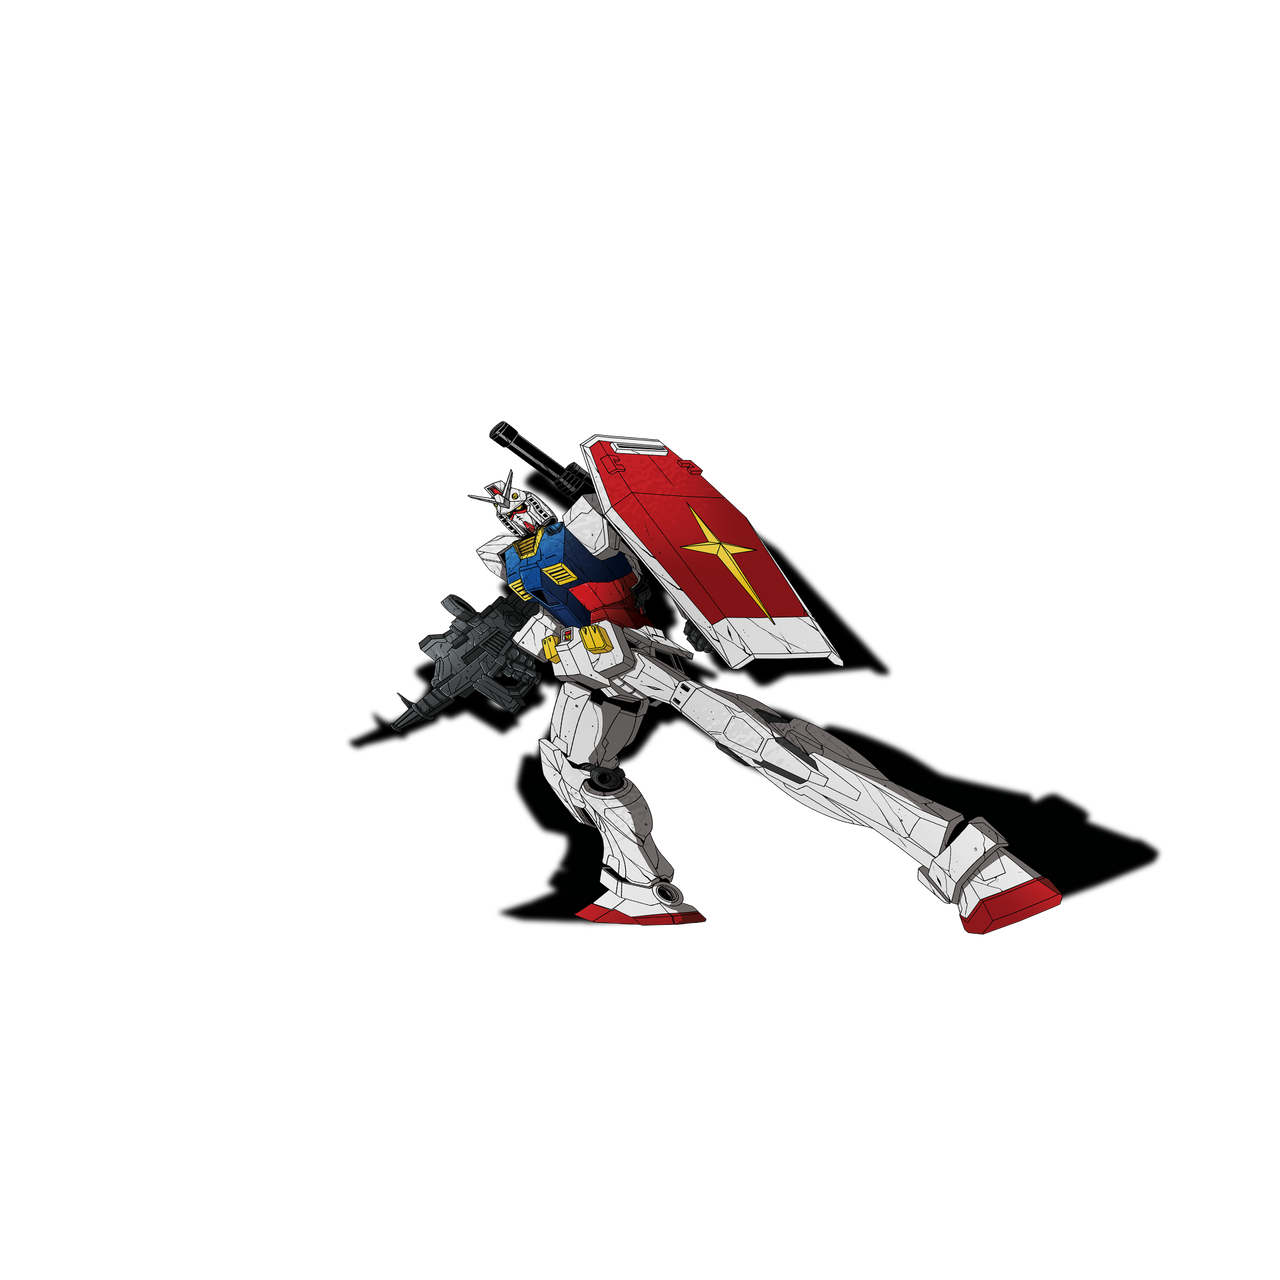 RX-78-2 Sticker Slap - Sticker Kawaii Desu